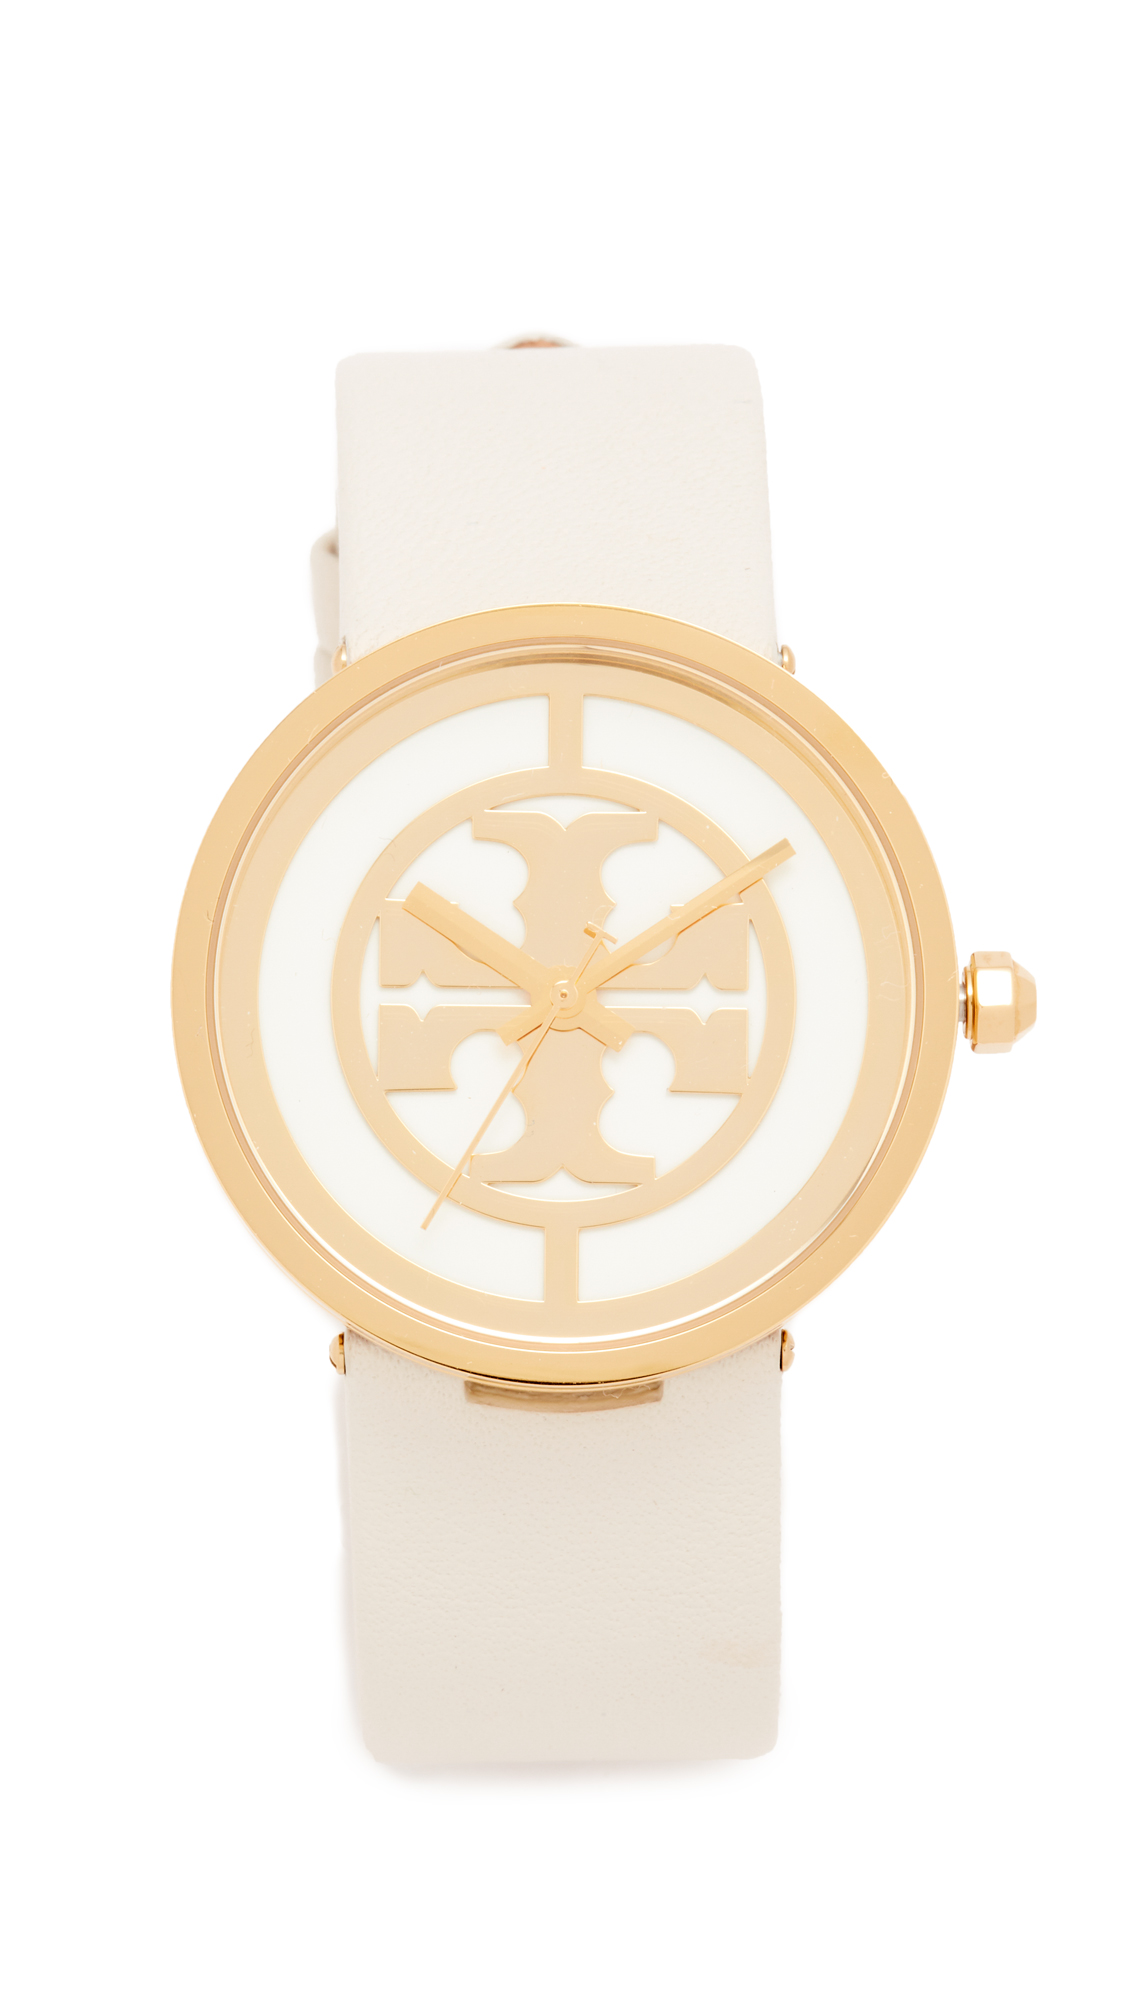 Tory Burch The Reva Leather Watch - Gold/Ivory